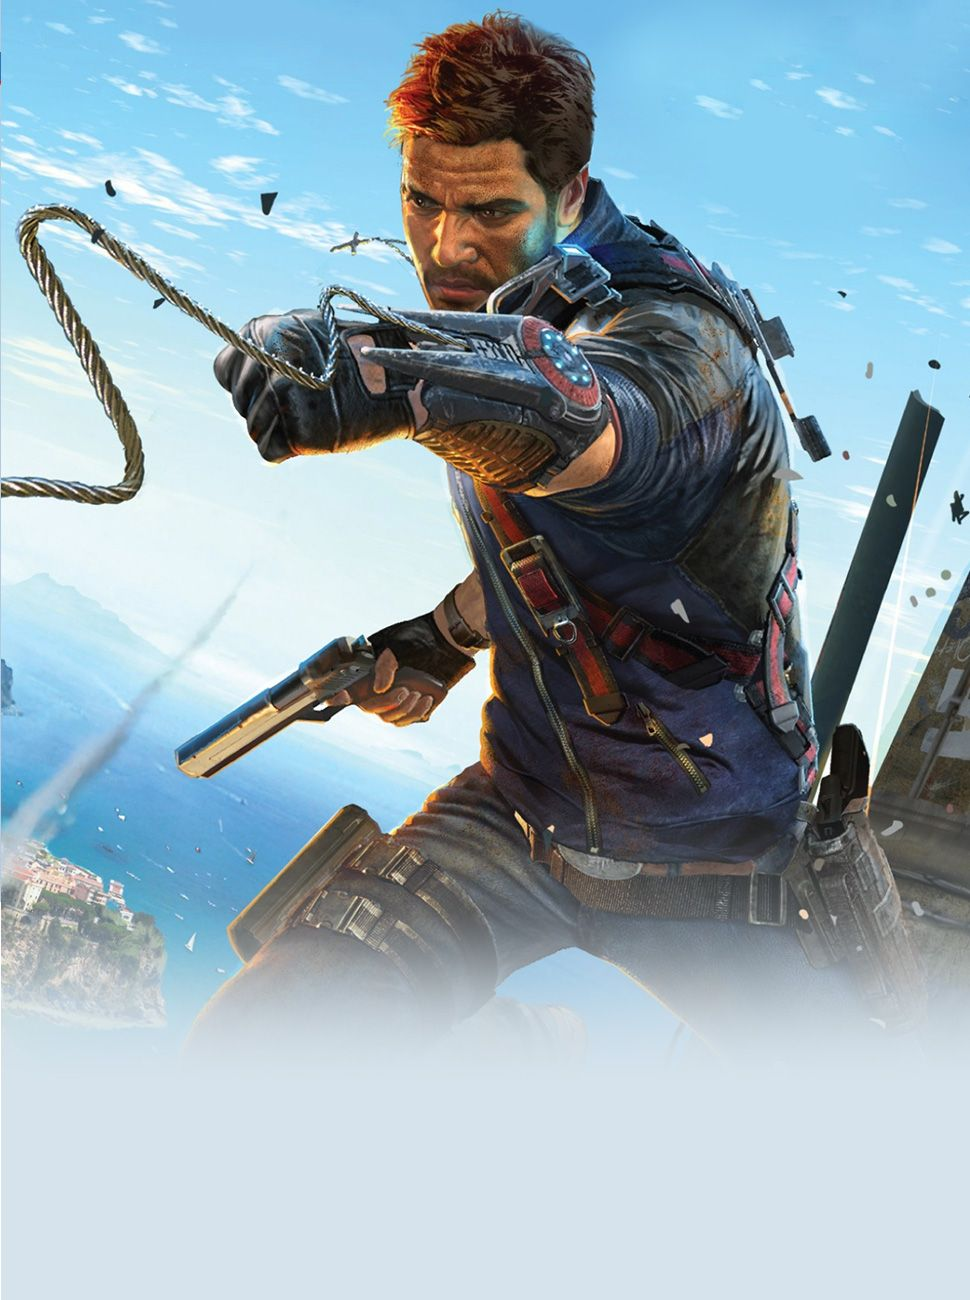 Just Cause 3 Wallpaper New Game From The Trilogy This Last Guardian Ps4 Reg Could Either Be Placed As A Double Page Spread Or At One Of Review Pages Since It Is